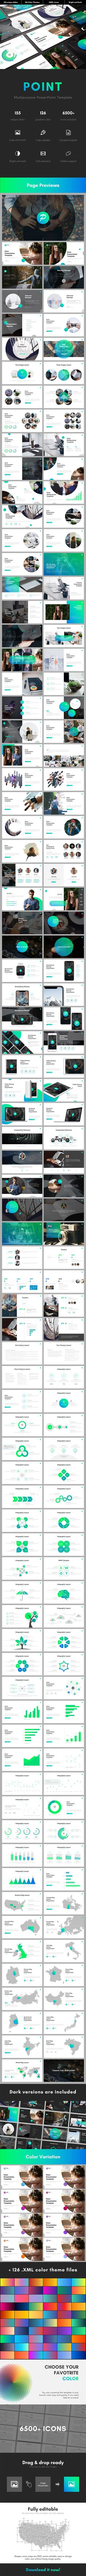 Point Multipurpose PowerPoint Template - Business PowerPoint Templates